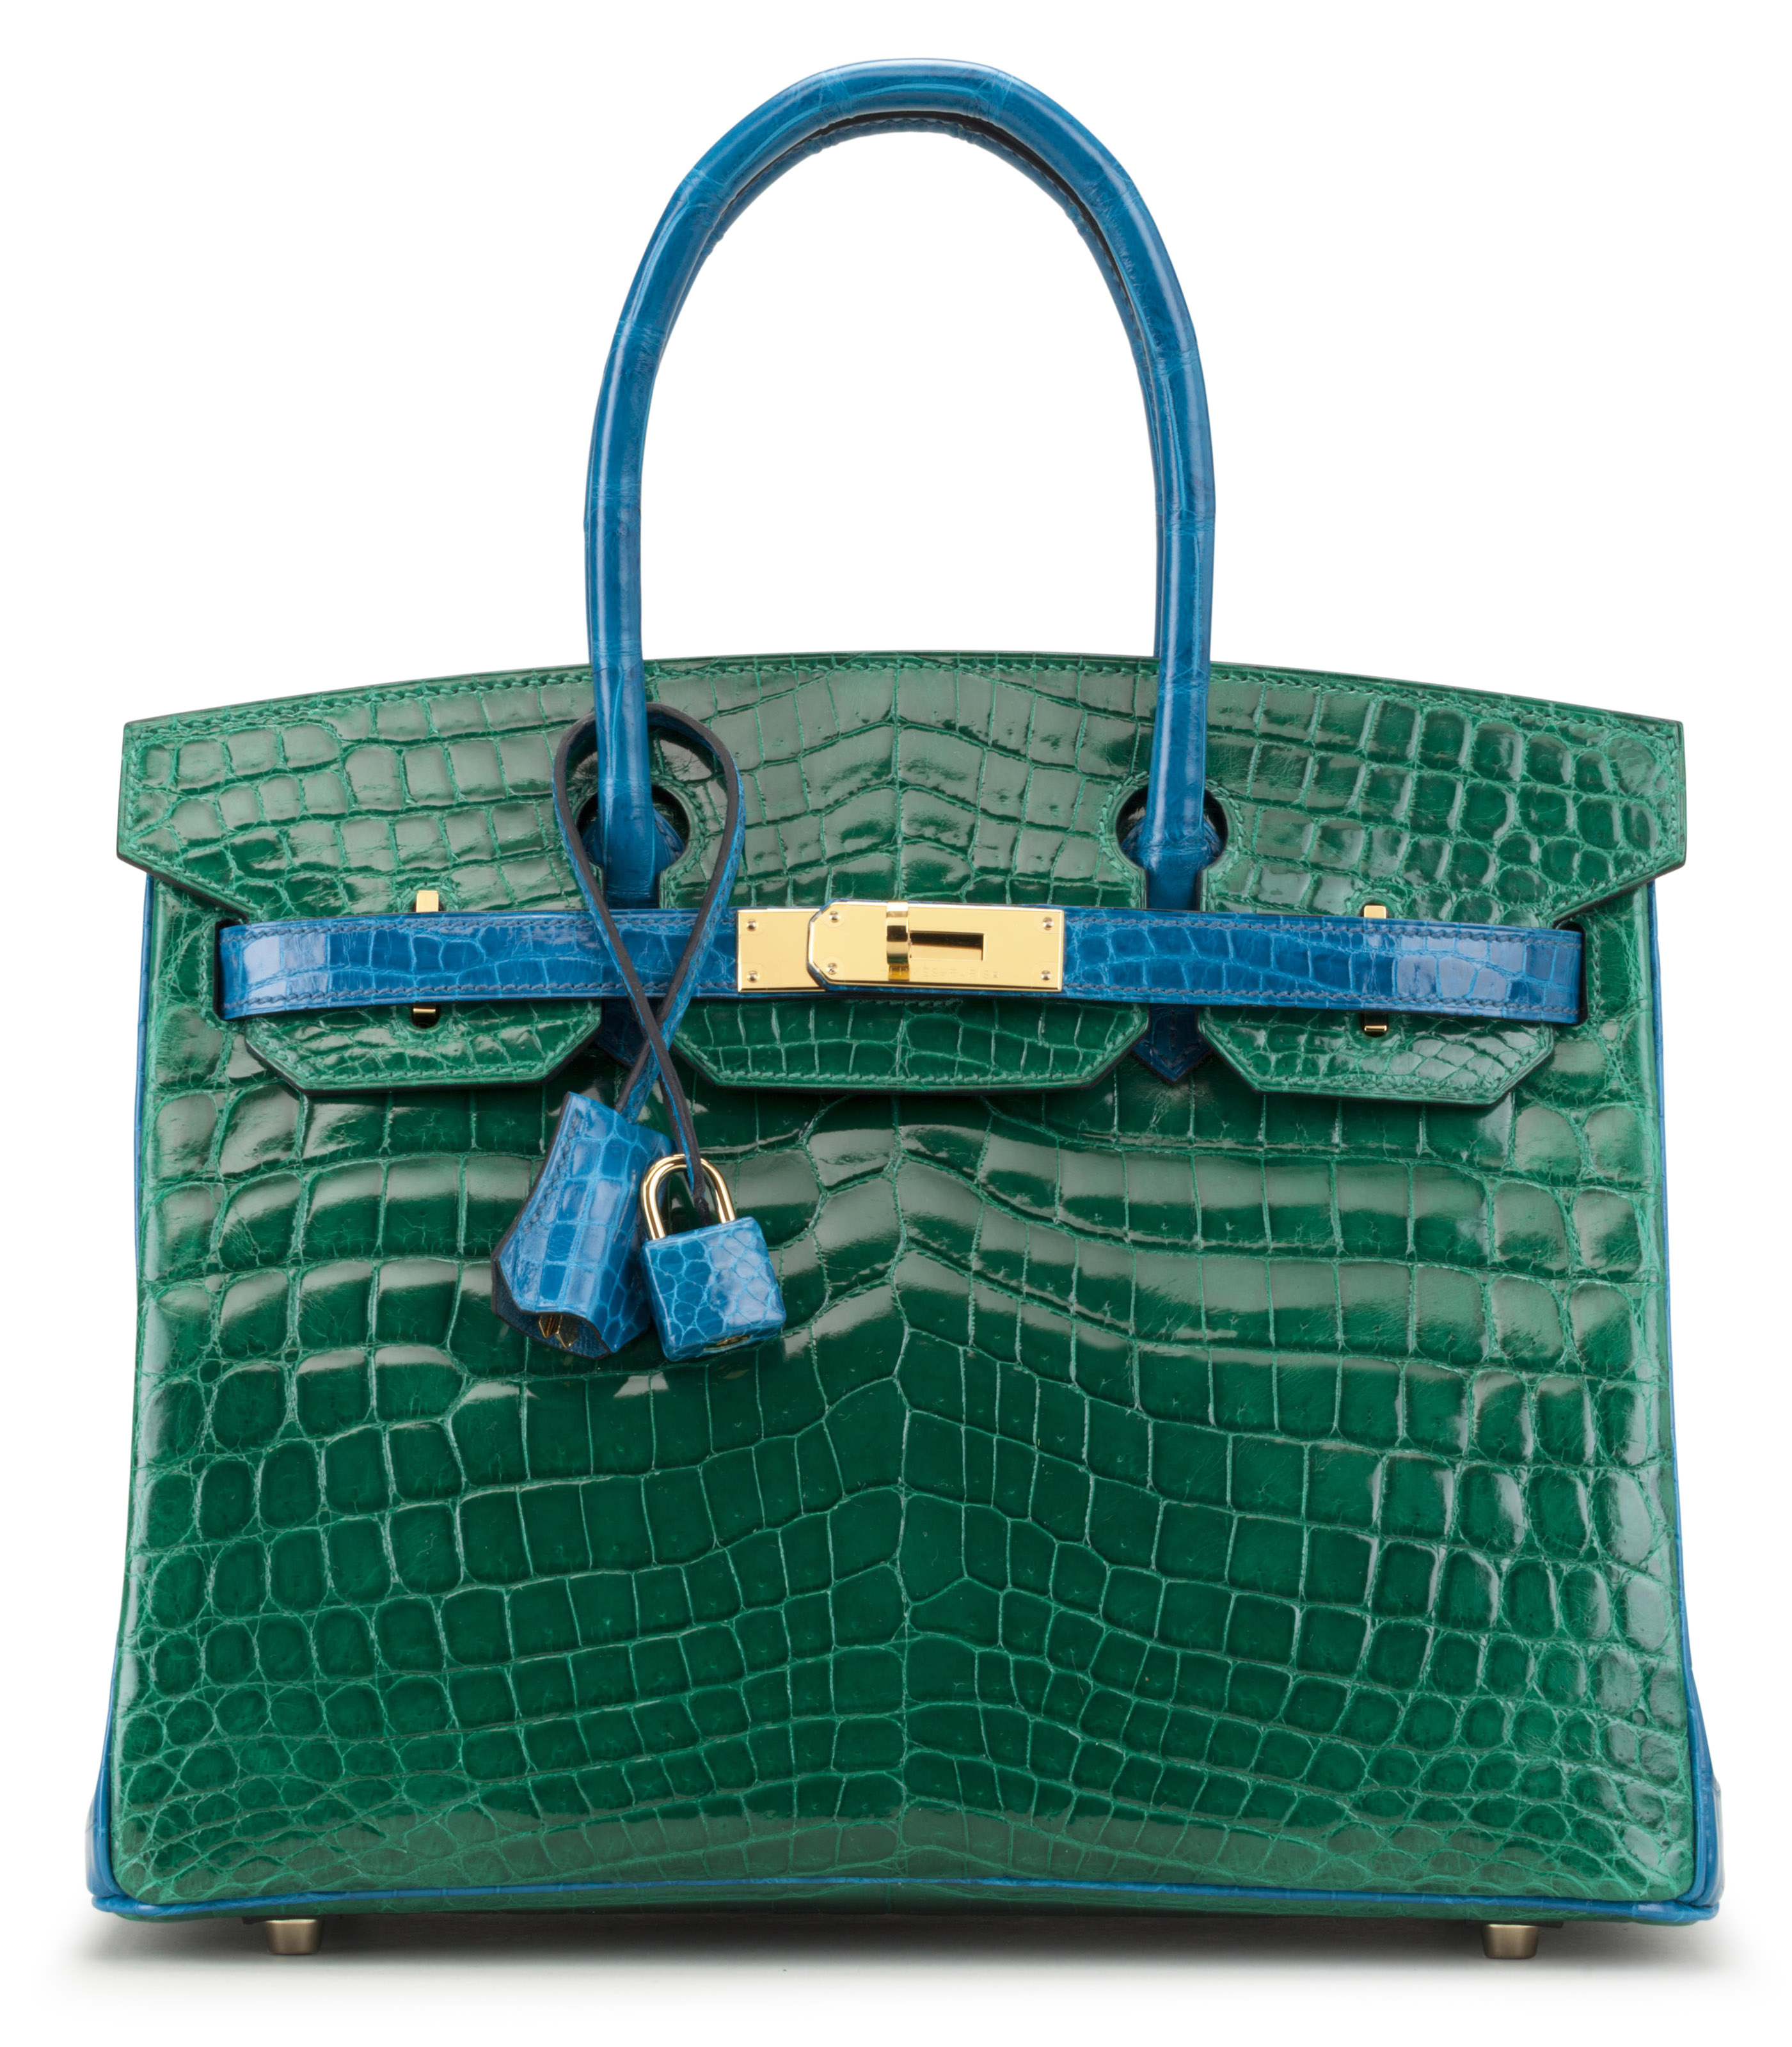 0ef1bf3667 Special order Hermes Birkins attract collectors  interest – here a 30cm  Horseshoe Stamp Shiny Vert